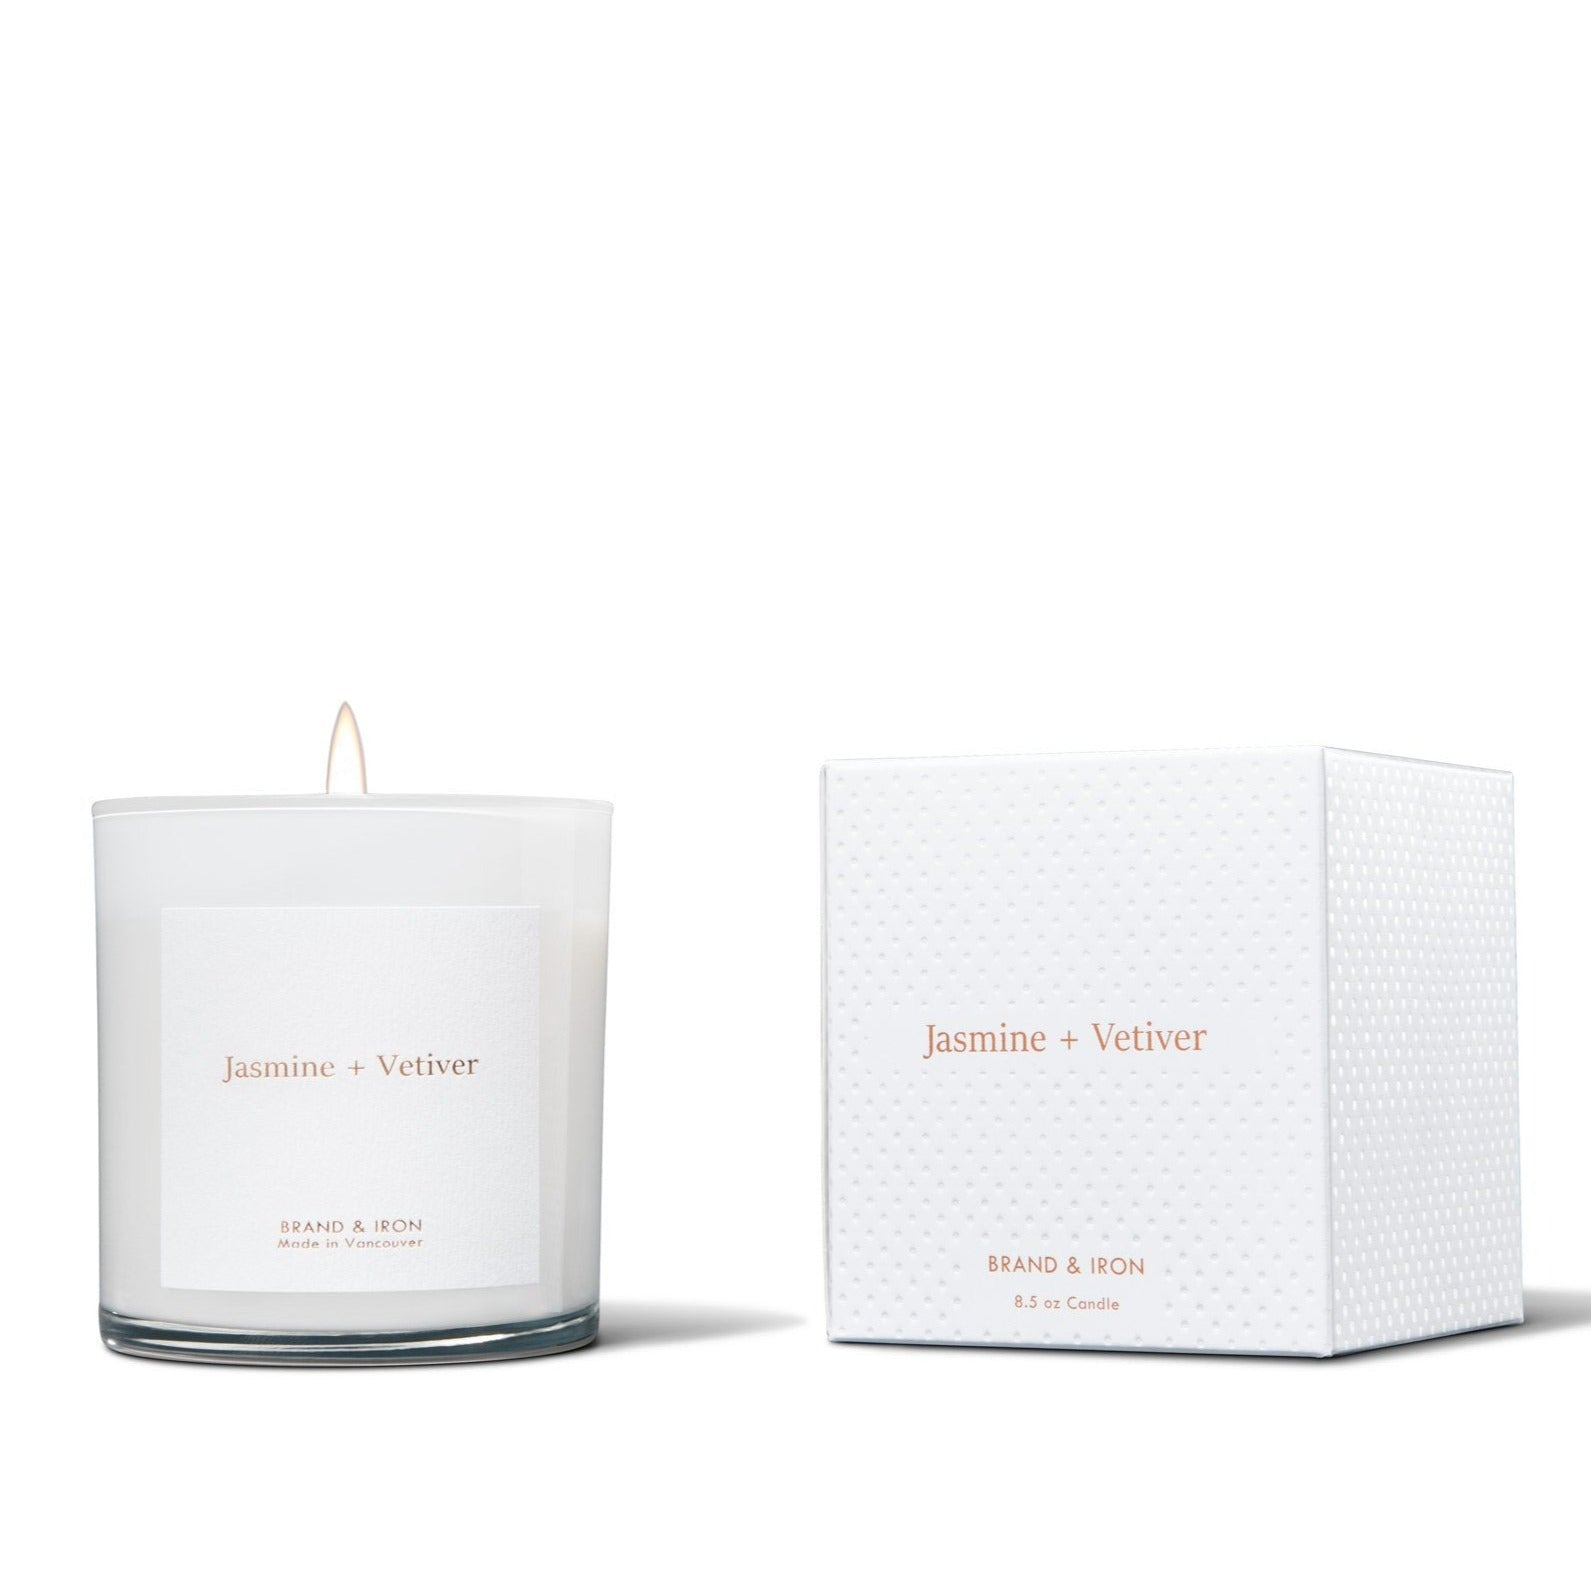 BRAND & IRON - HOME SERIES JASMINE & VETIVER CANDLE